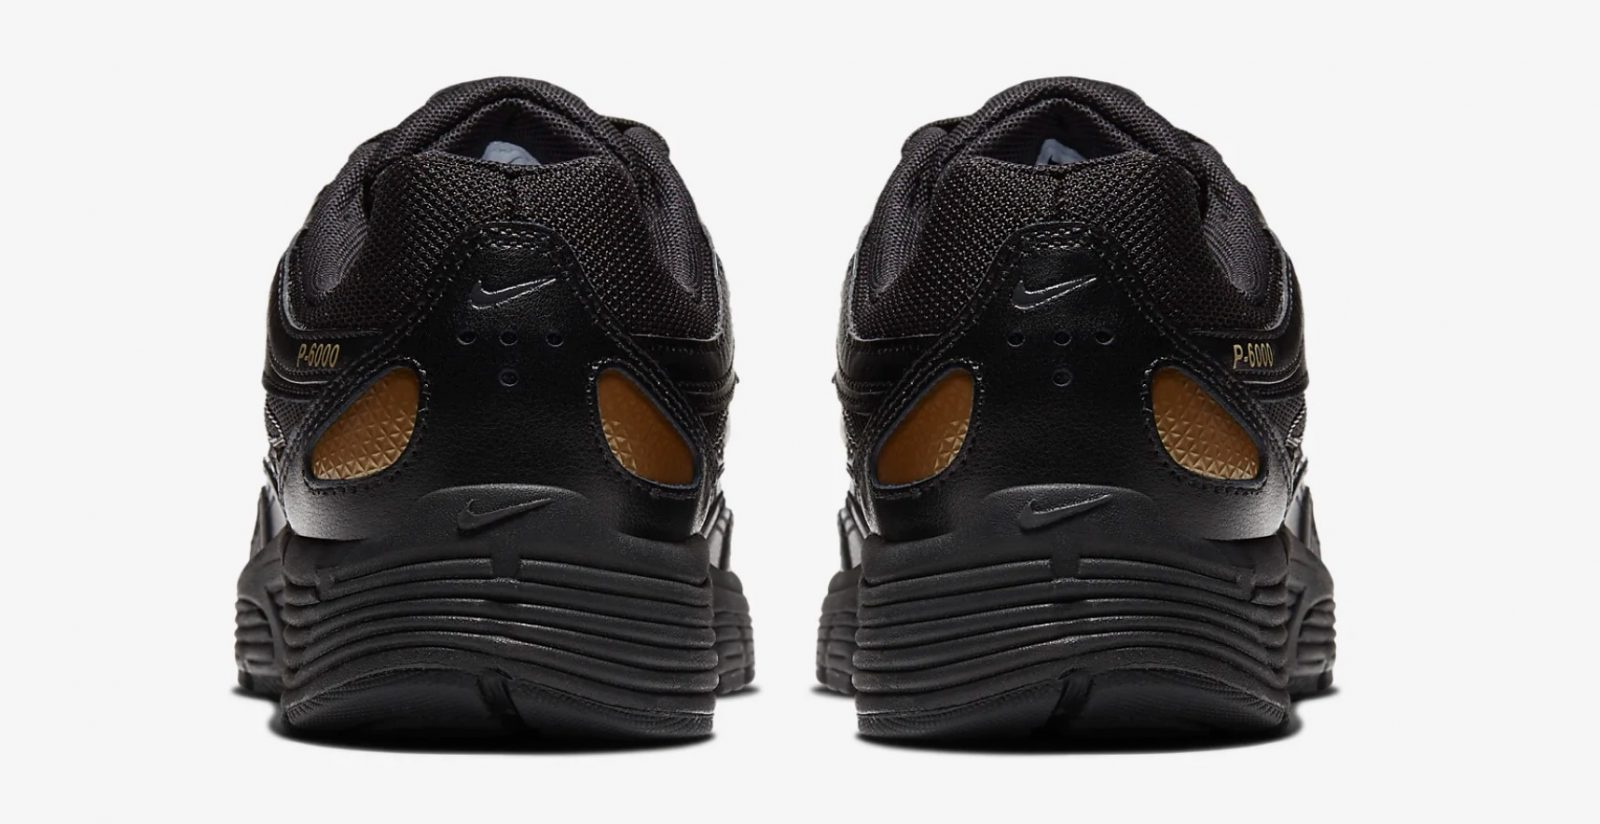 CJ9584-002 The Nike P-6000 Has Had An AW19 Makeover In Black And Gold 5 heel